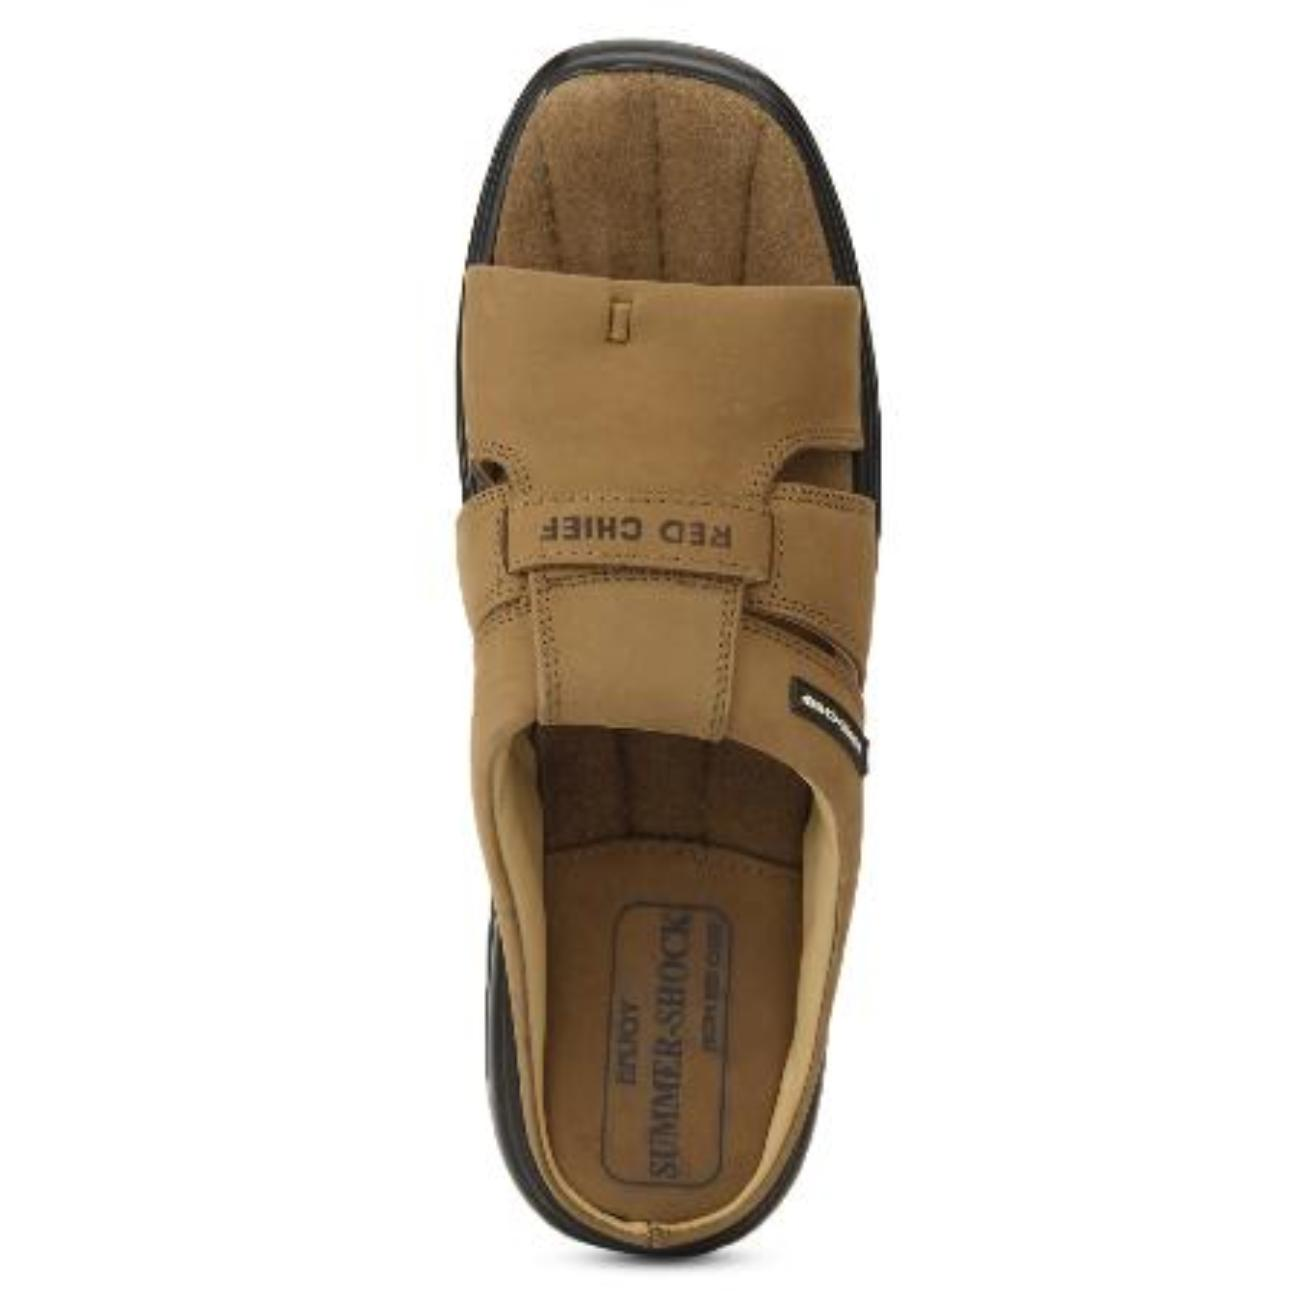 rust slip-on slippers top view